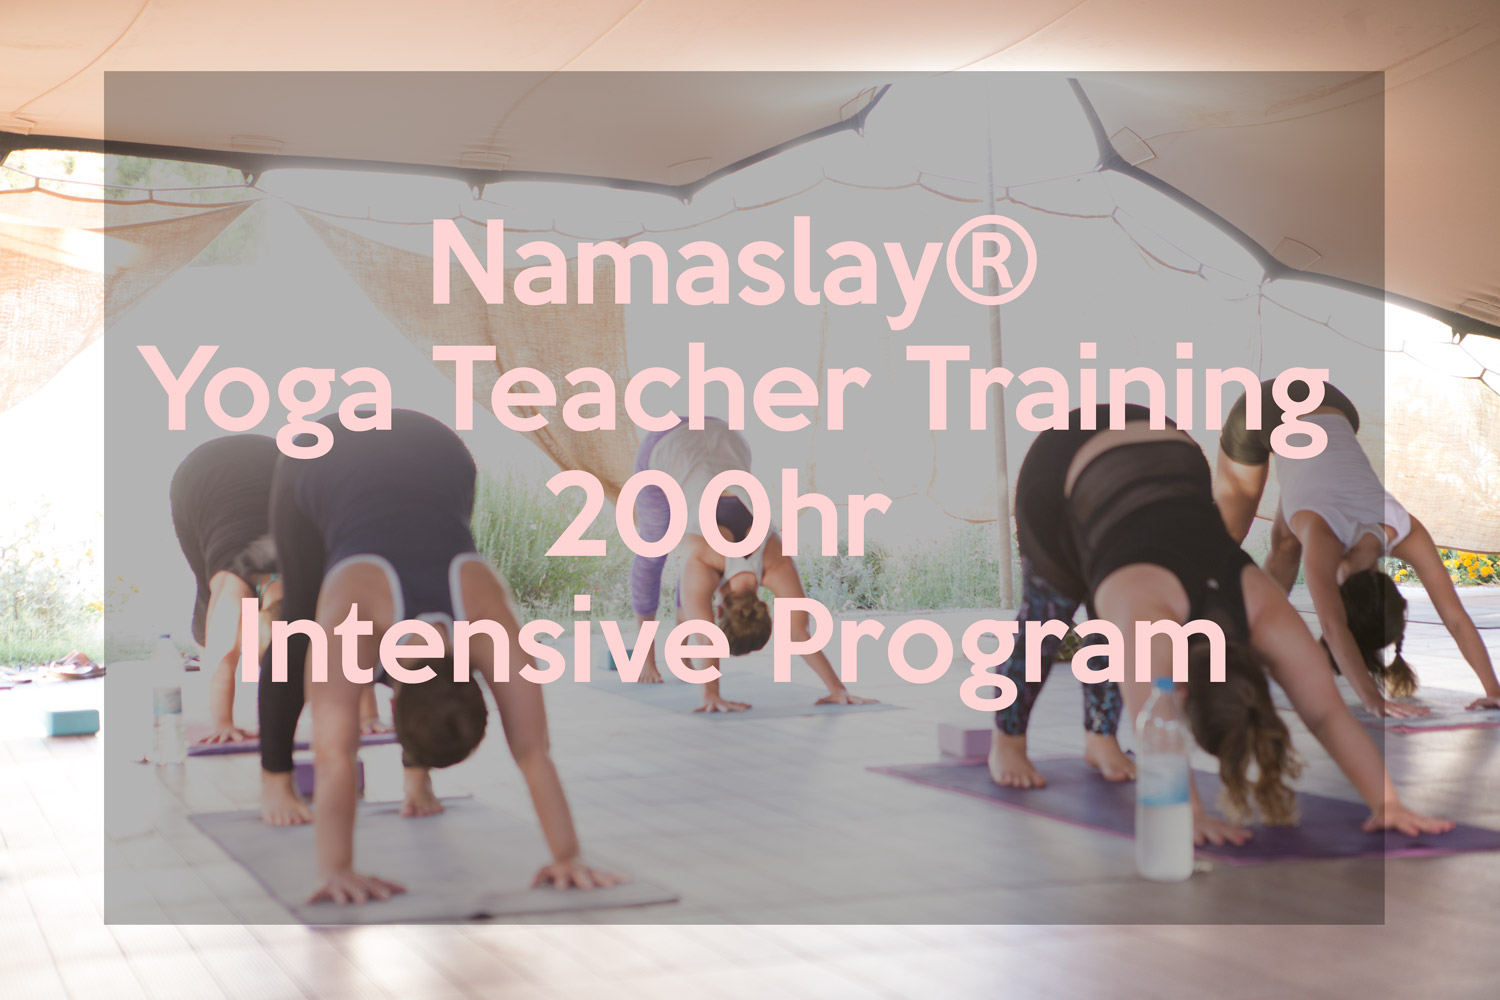 namaslay-training.jpg